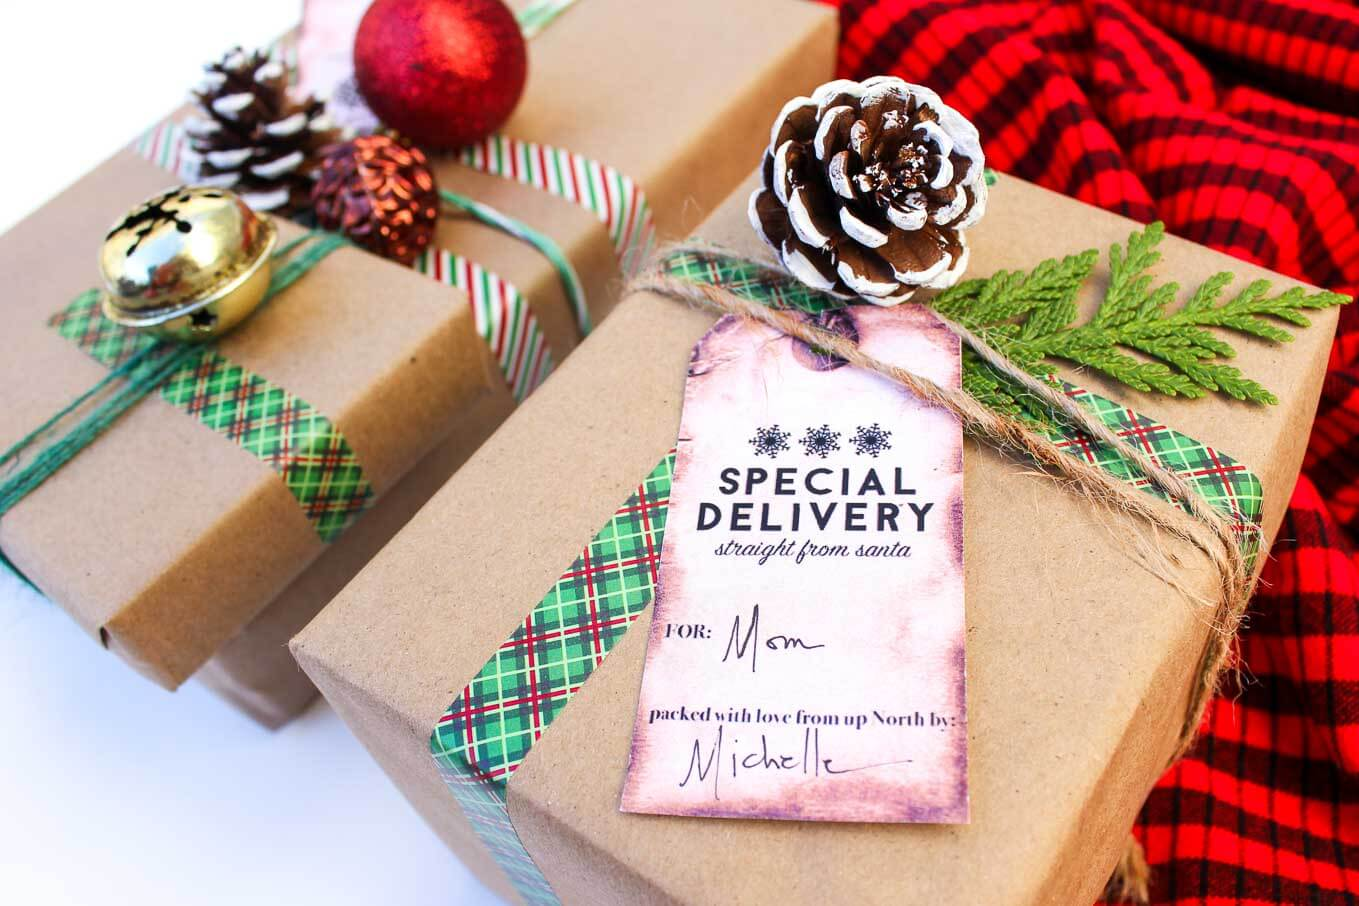 Wrap Your Love - Gift Wrap and Delivery